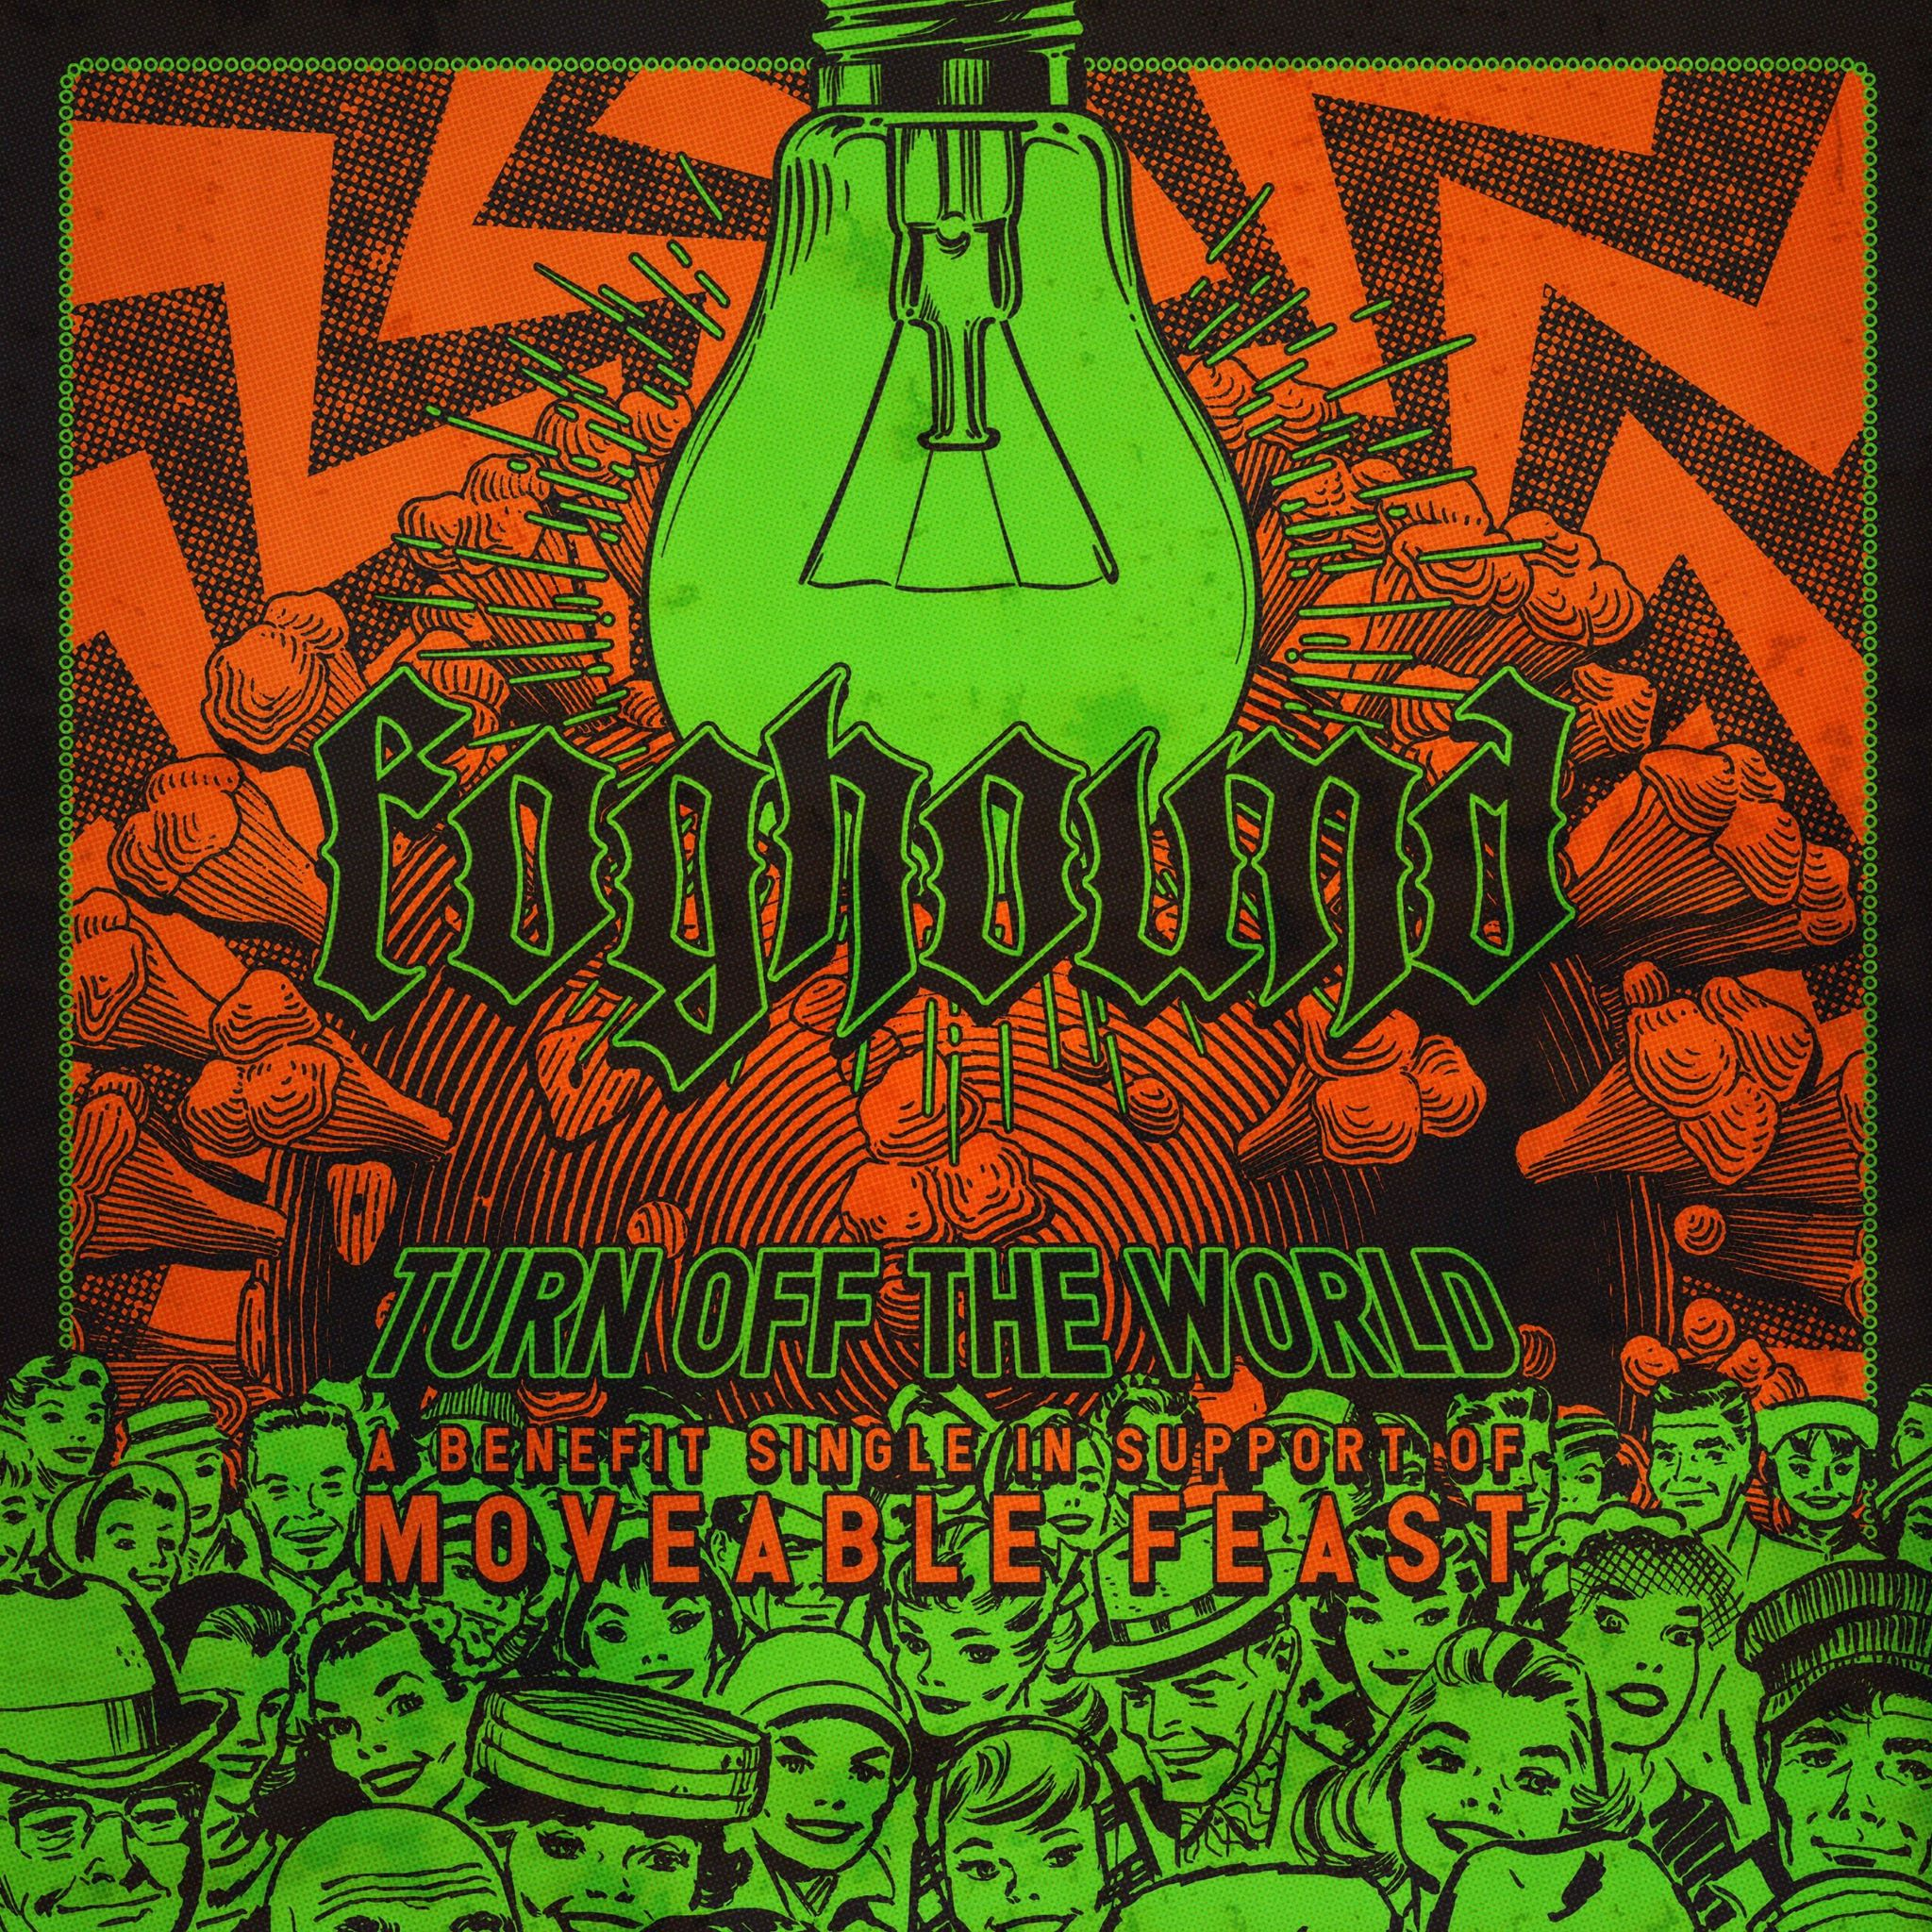 foghound turn off the world (art by bill kole)